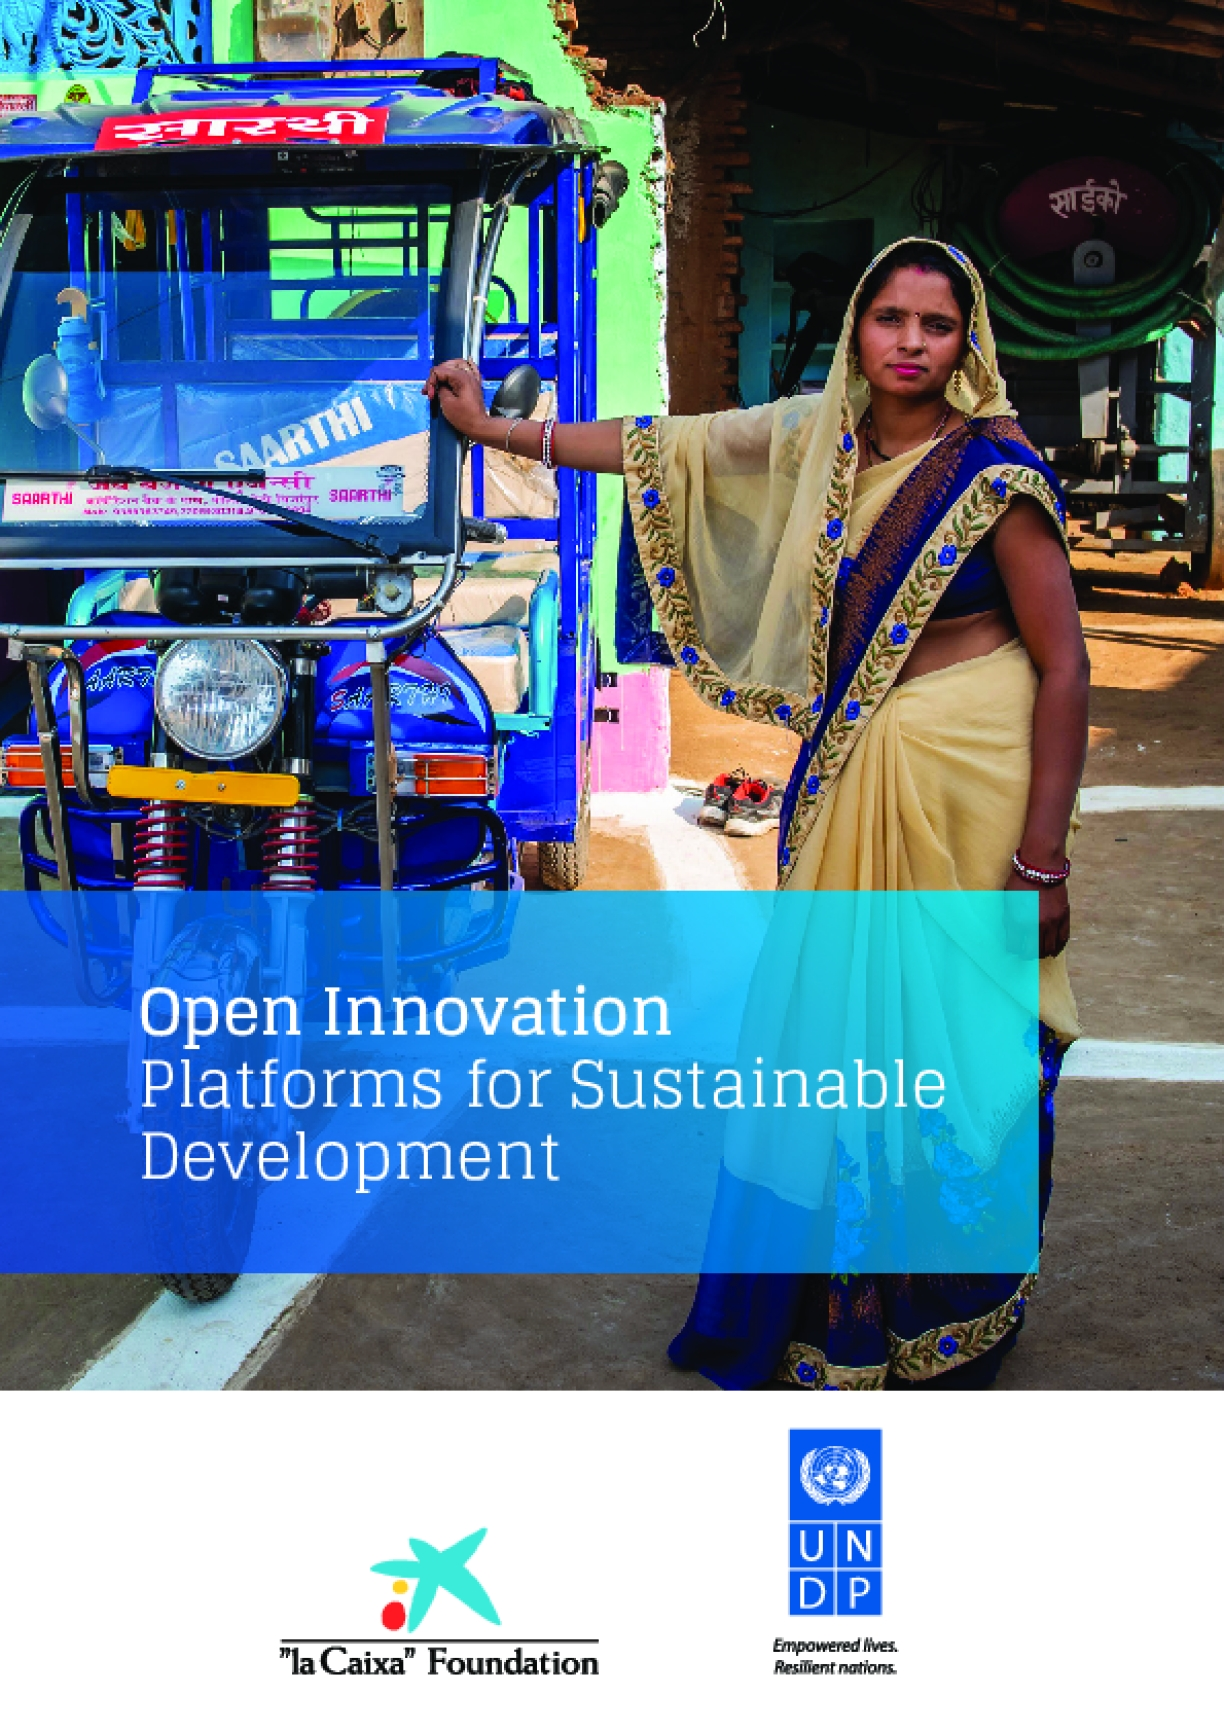 Open Innovation Platforms for Sustainable Development